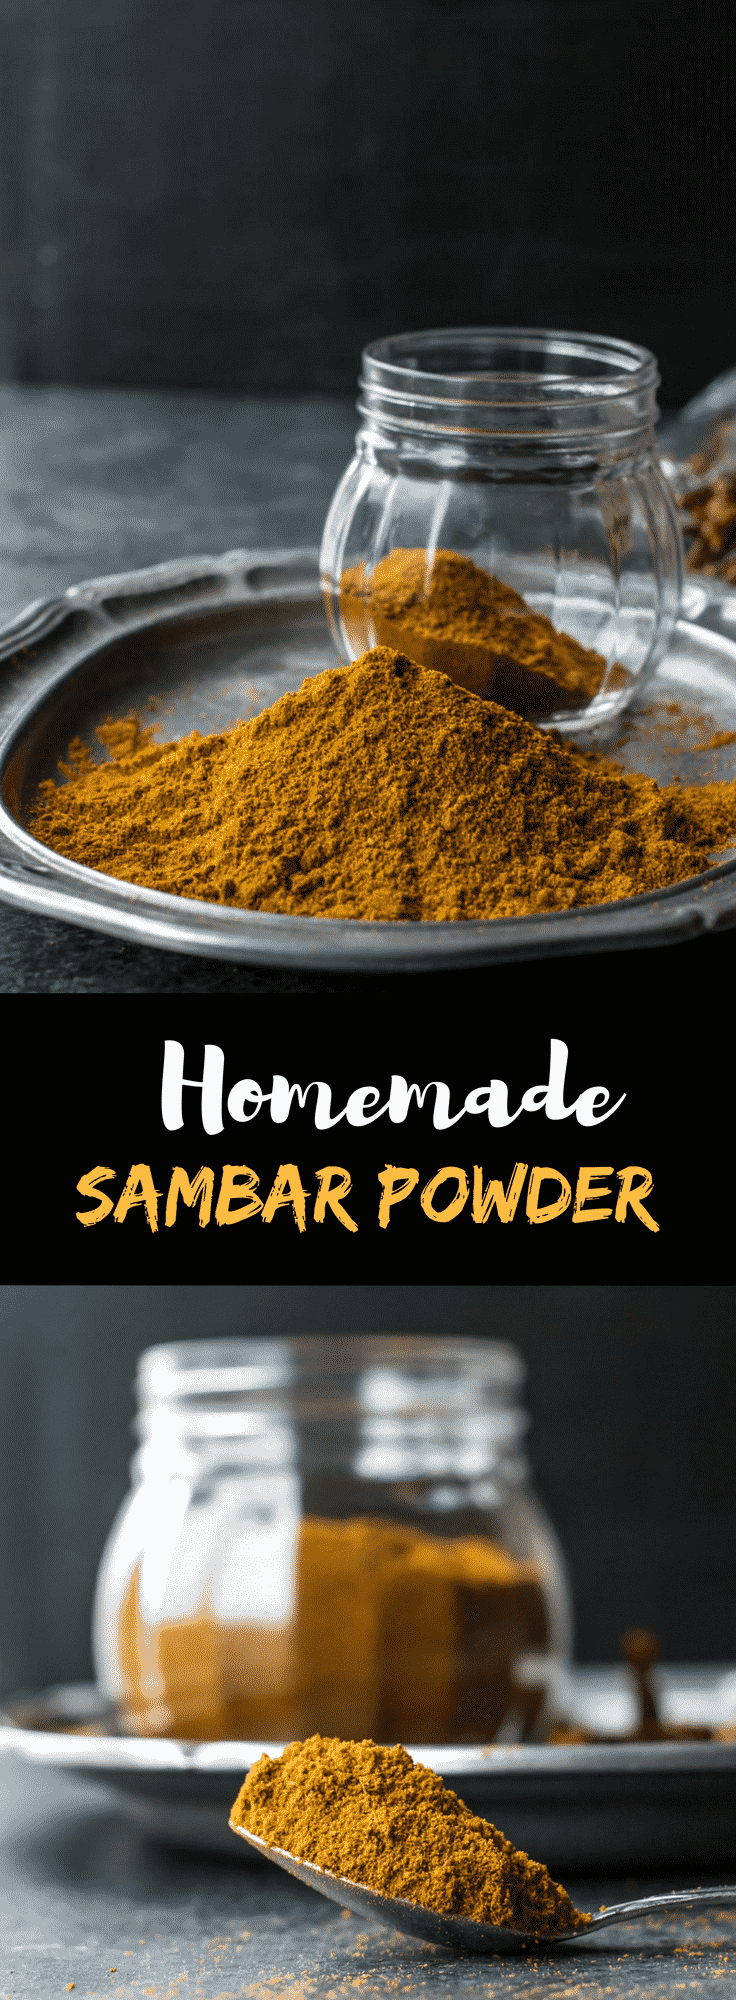 Sambar powder is this aromatic spice blend that transforms ordinary lentil-vegetable dishes into delicious, wholesome stews. Make the recipe today and you'll never buy this spice blend from the store again!